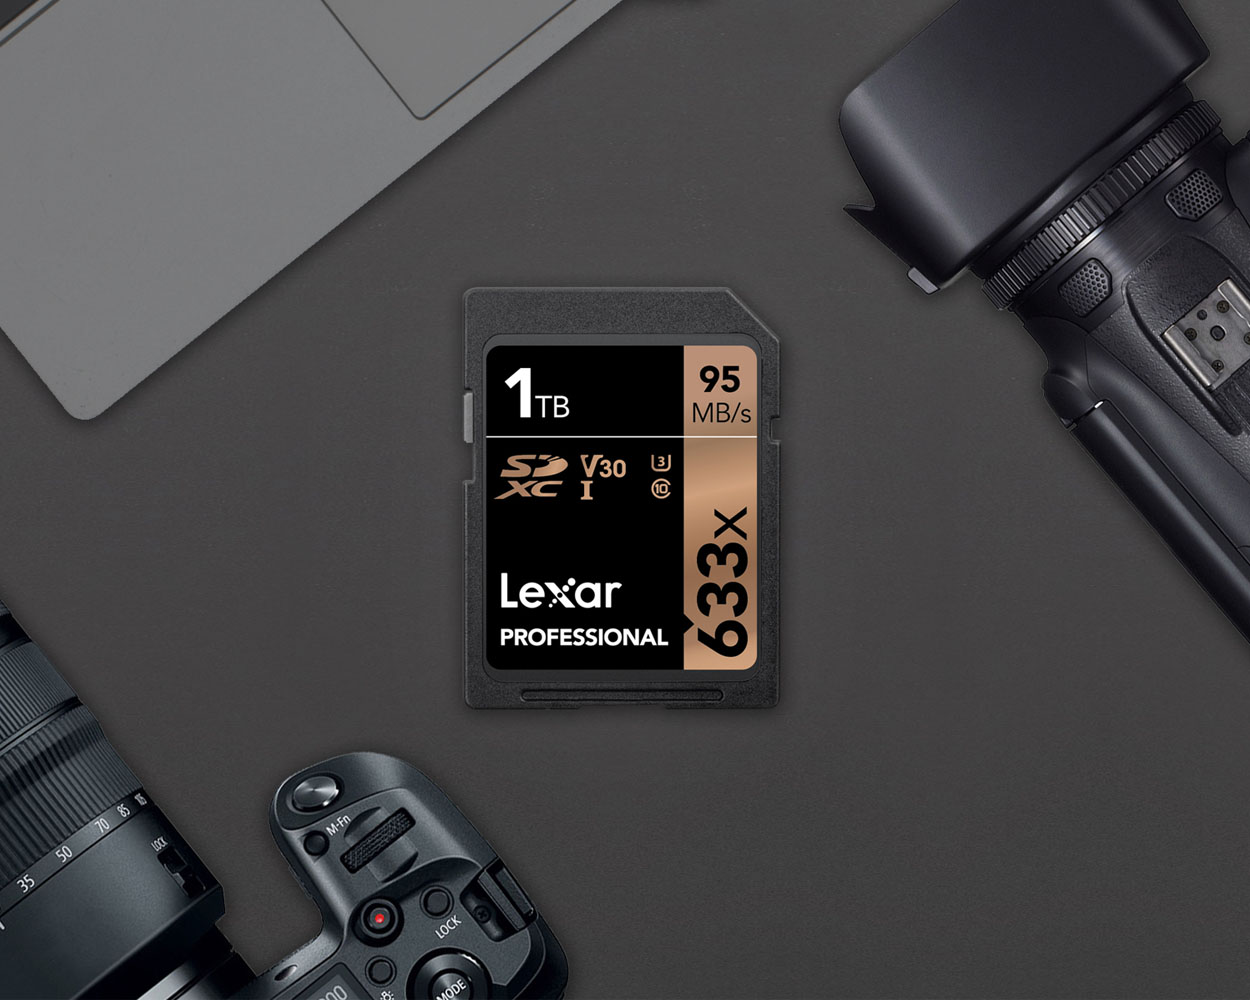 Lexar announces 1TB SD card for sale